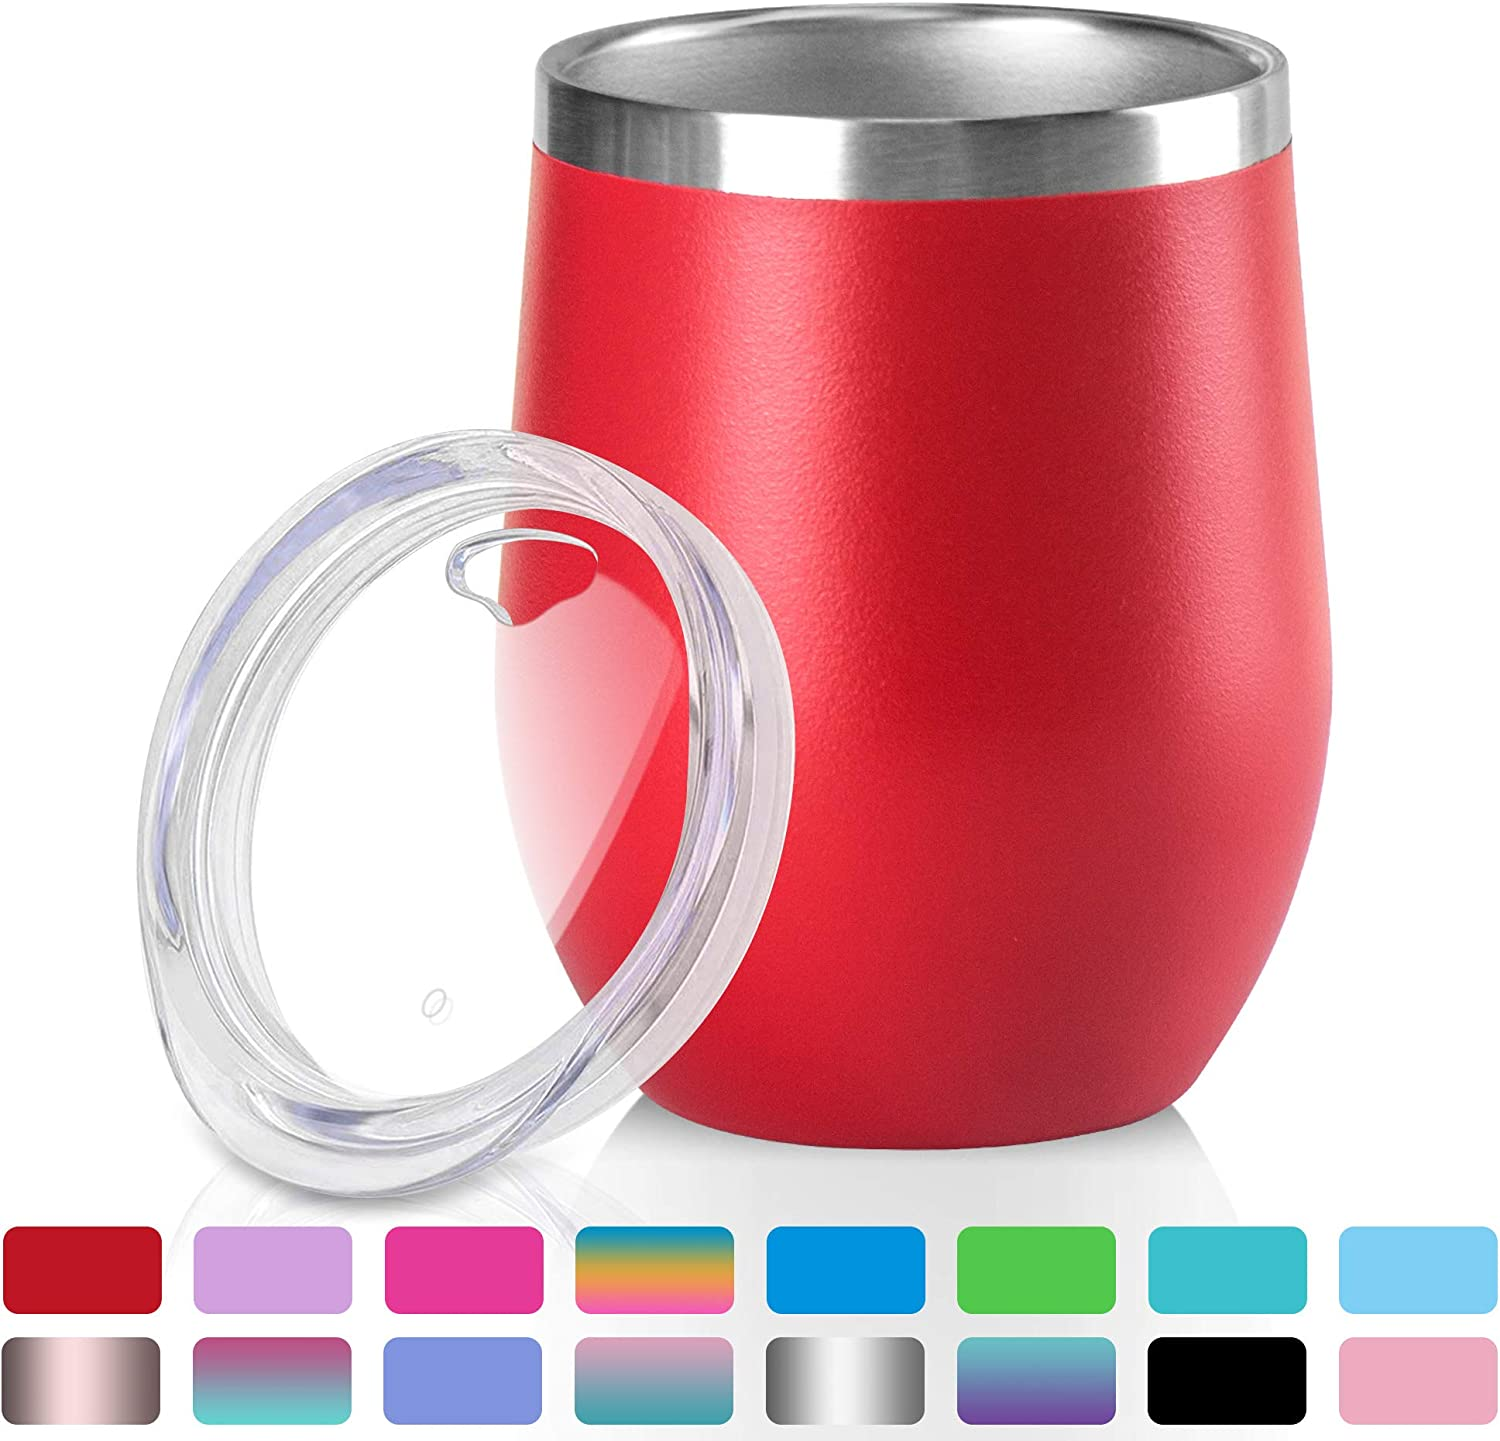 arteesol Coffee Cup - 12 oz Stainless Steel Travel Mug Coffee Mug - Double Wall Vacuum Insulated Tumbler with lid Fit for Coffee, Wine, Cocktails, Ice Cream